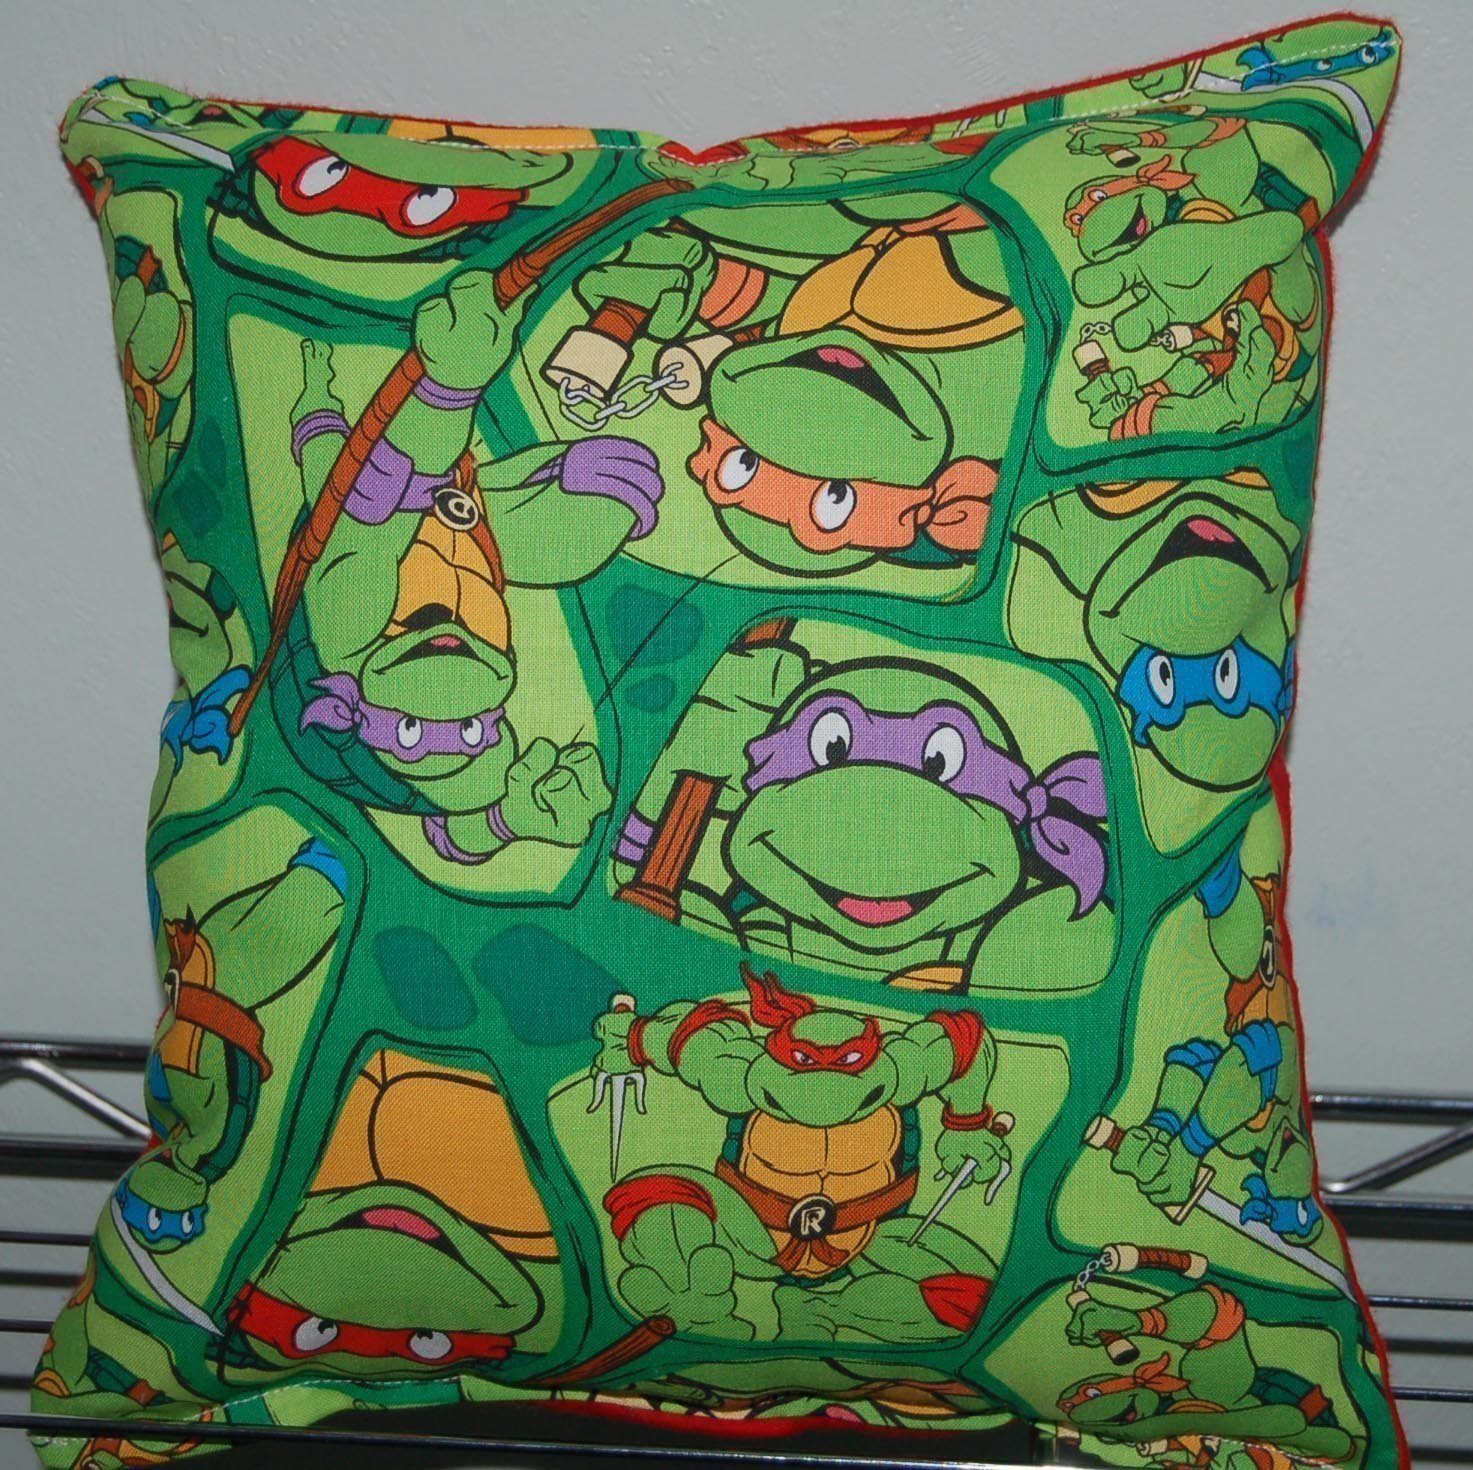 "Ninja Turtles Pillow TMNT Cut Outs Pillow Leonardo , Michelangelo , Raphael USA Pillow is approximately 10"" X 11"